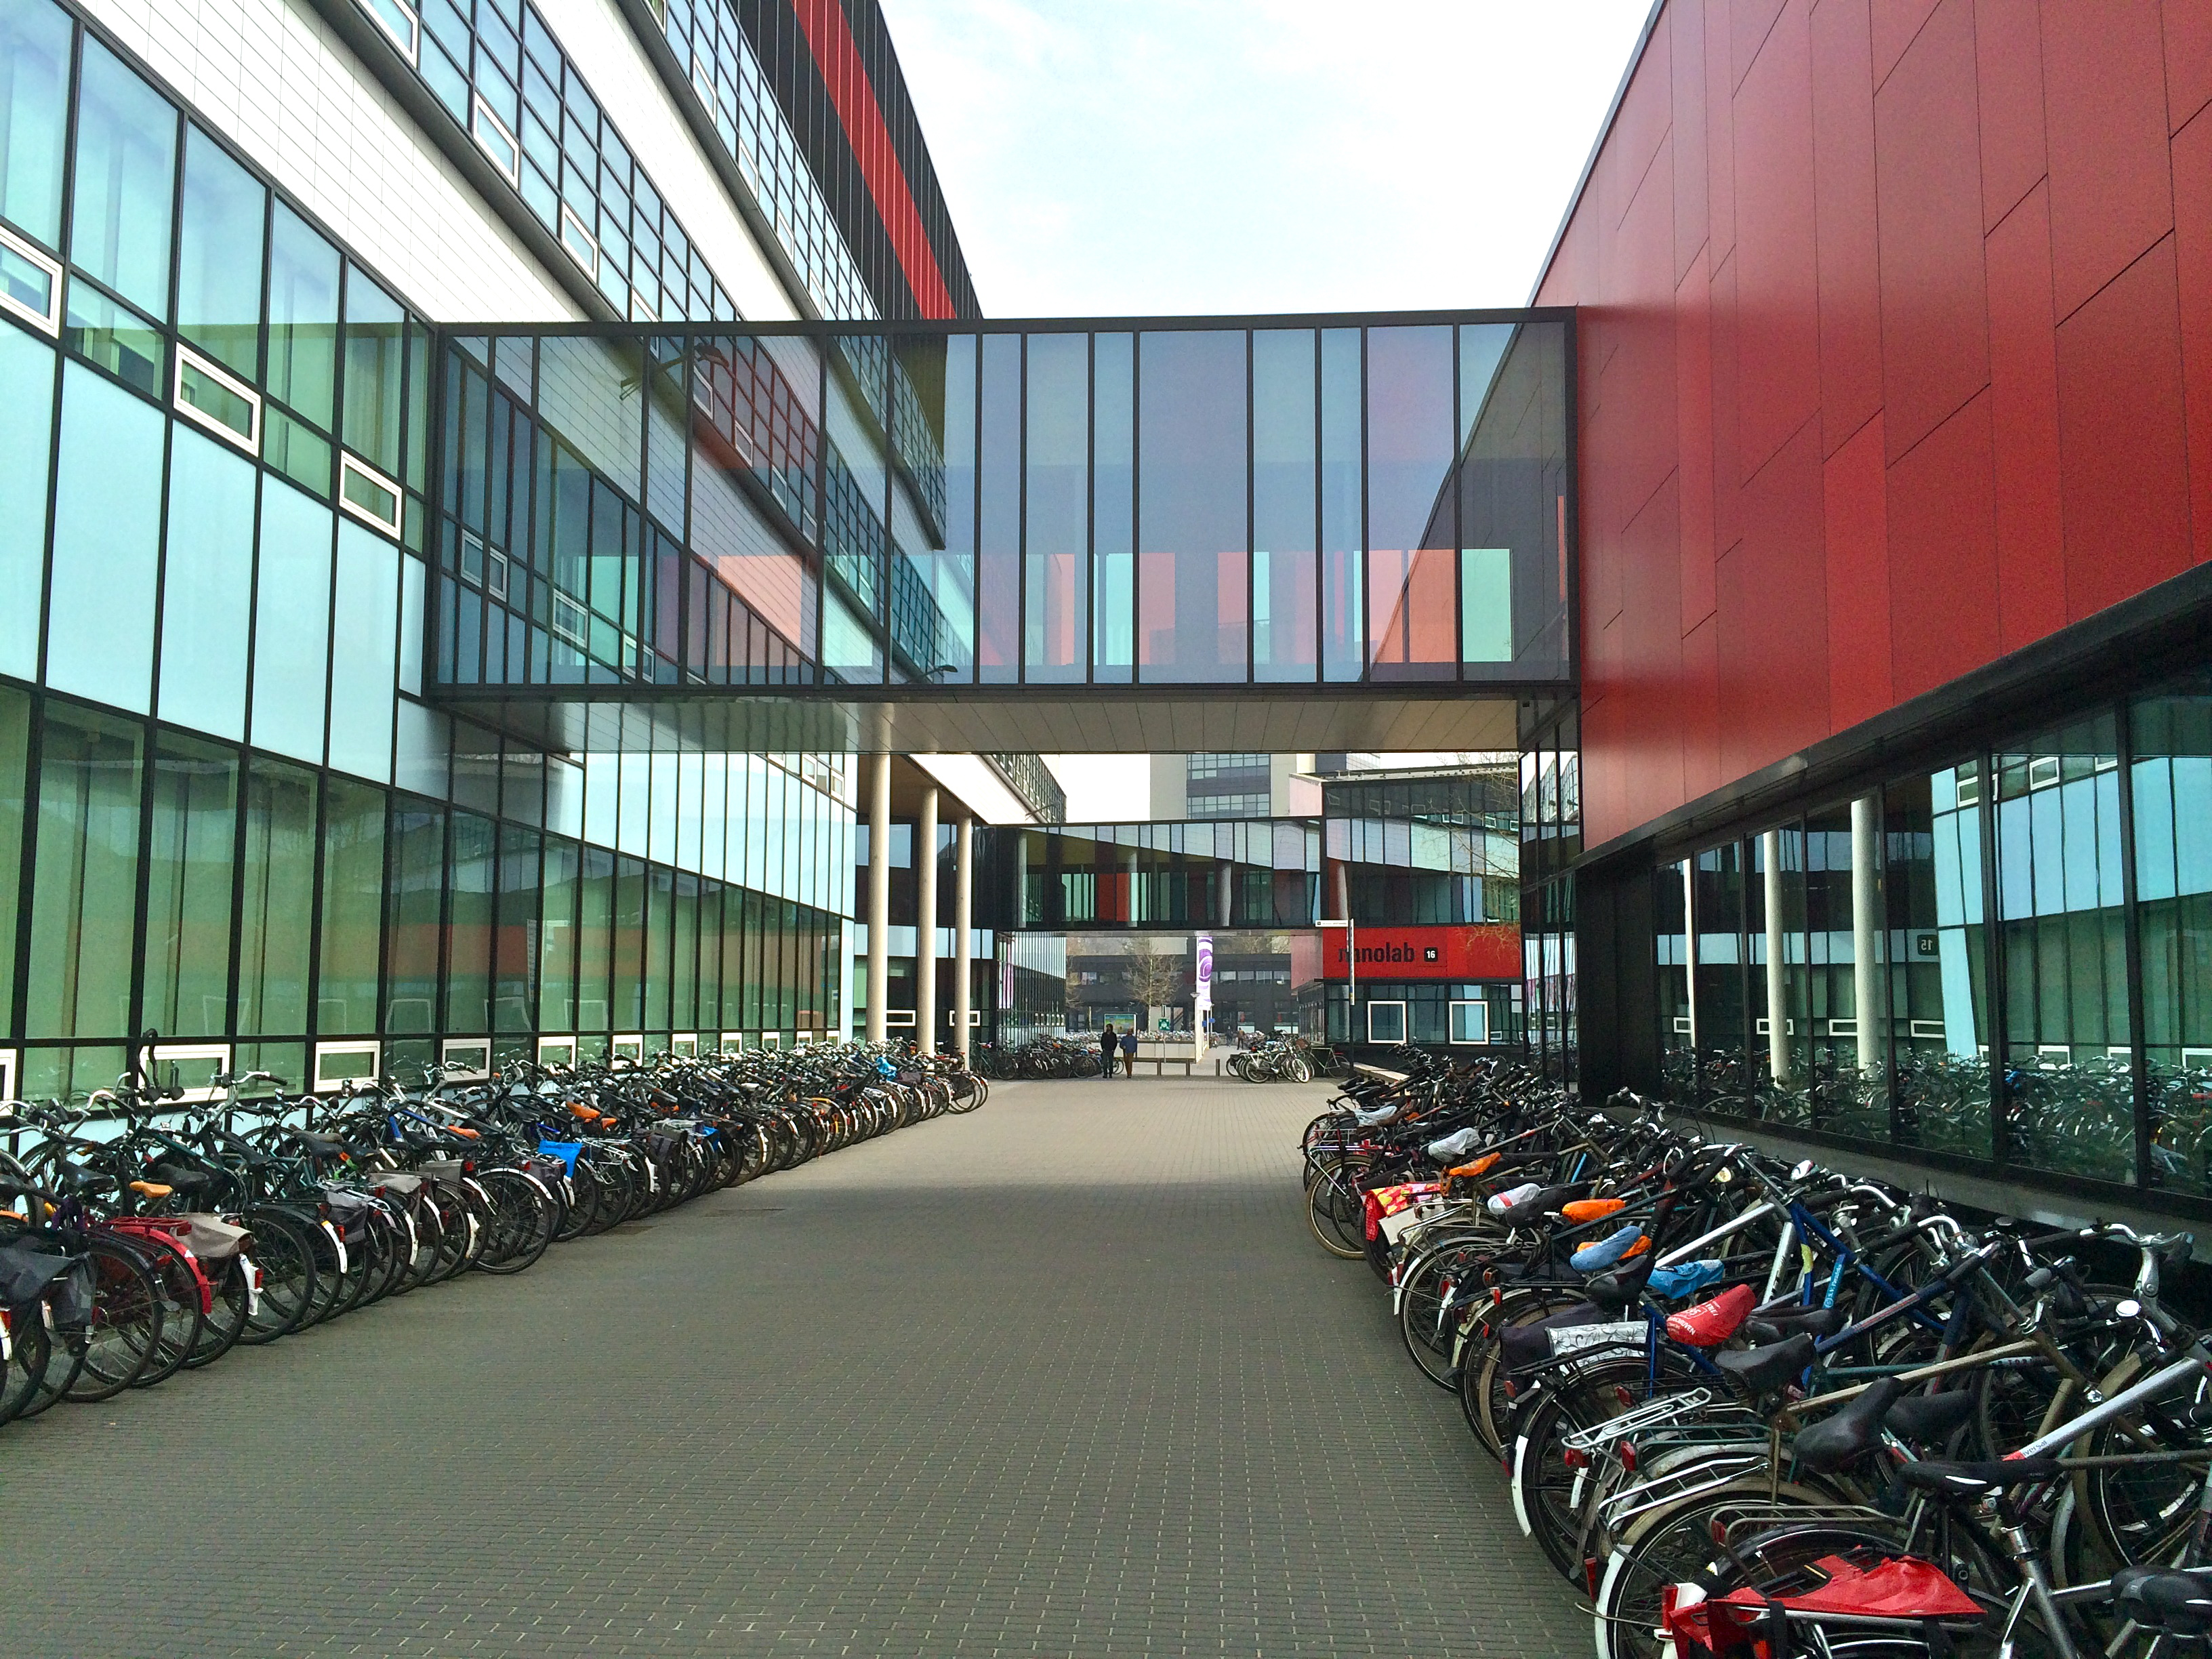 Campus Universiteit Twente